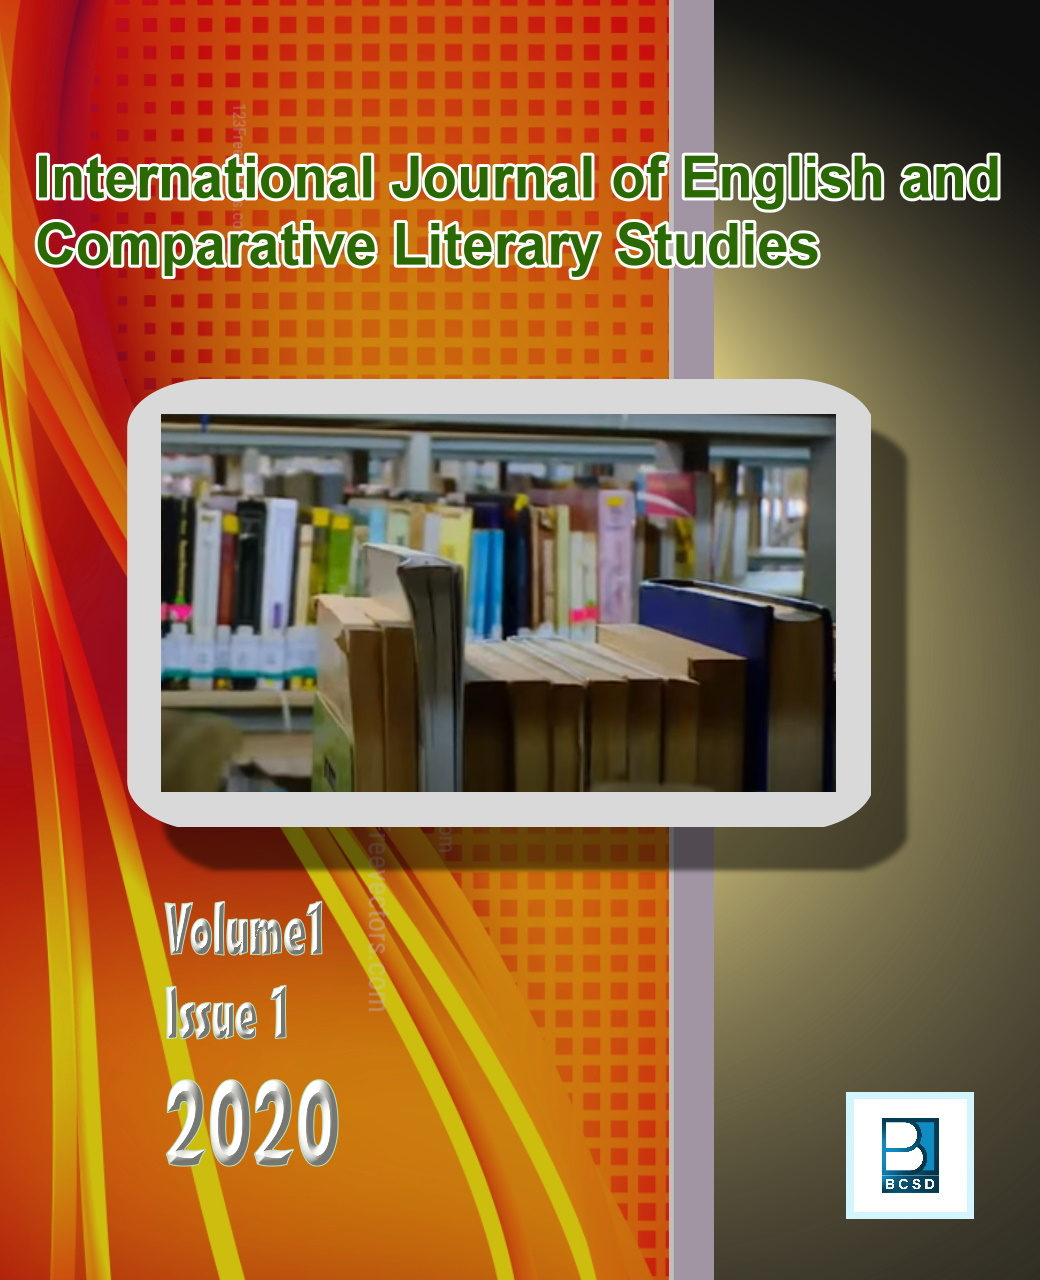 International Journal of English and Comparative Literary Studies-Asos İndeks